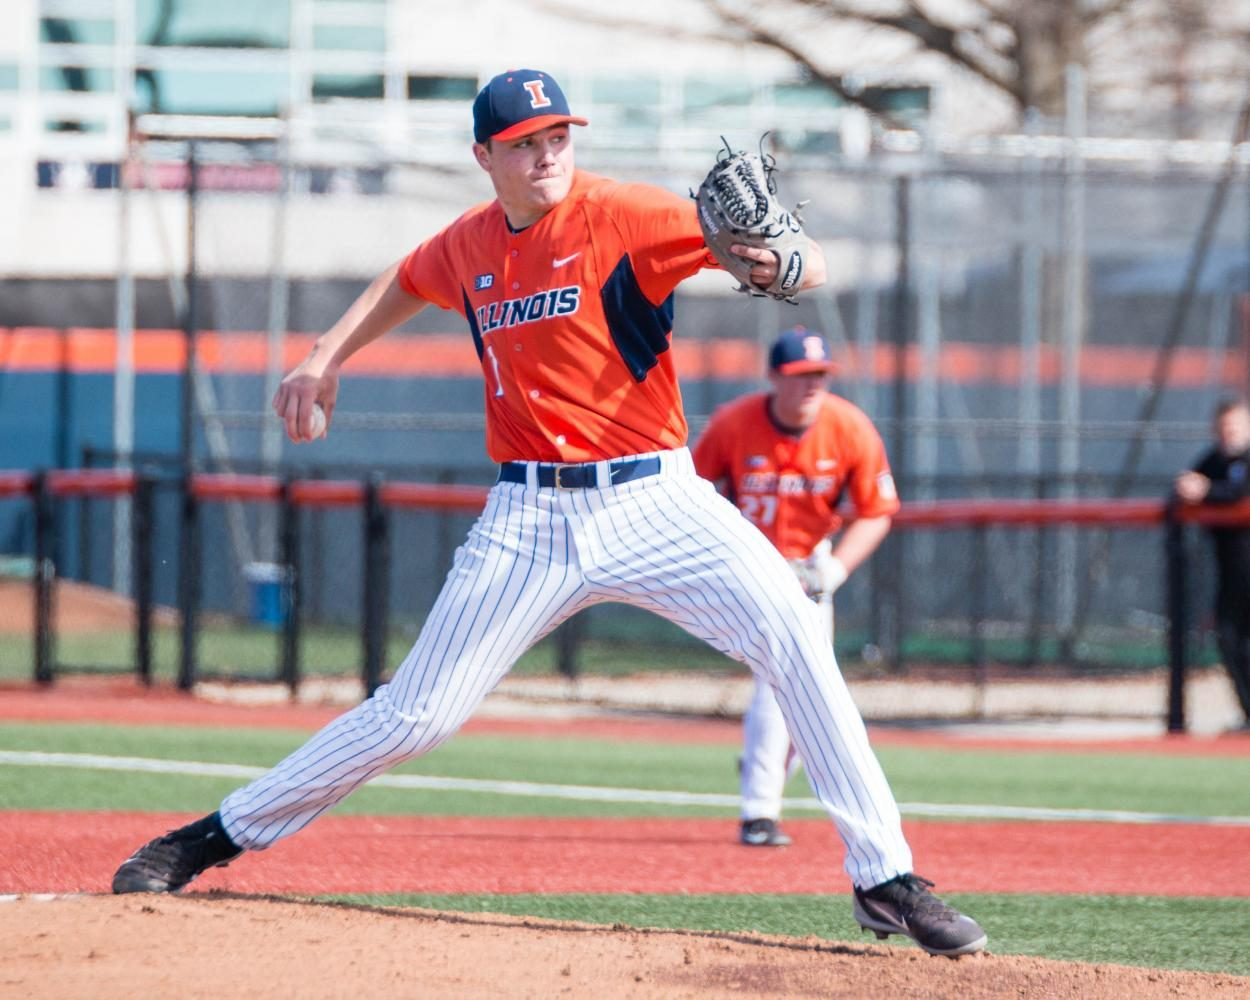 Illini plays against Indiana State on April 5.